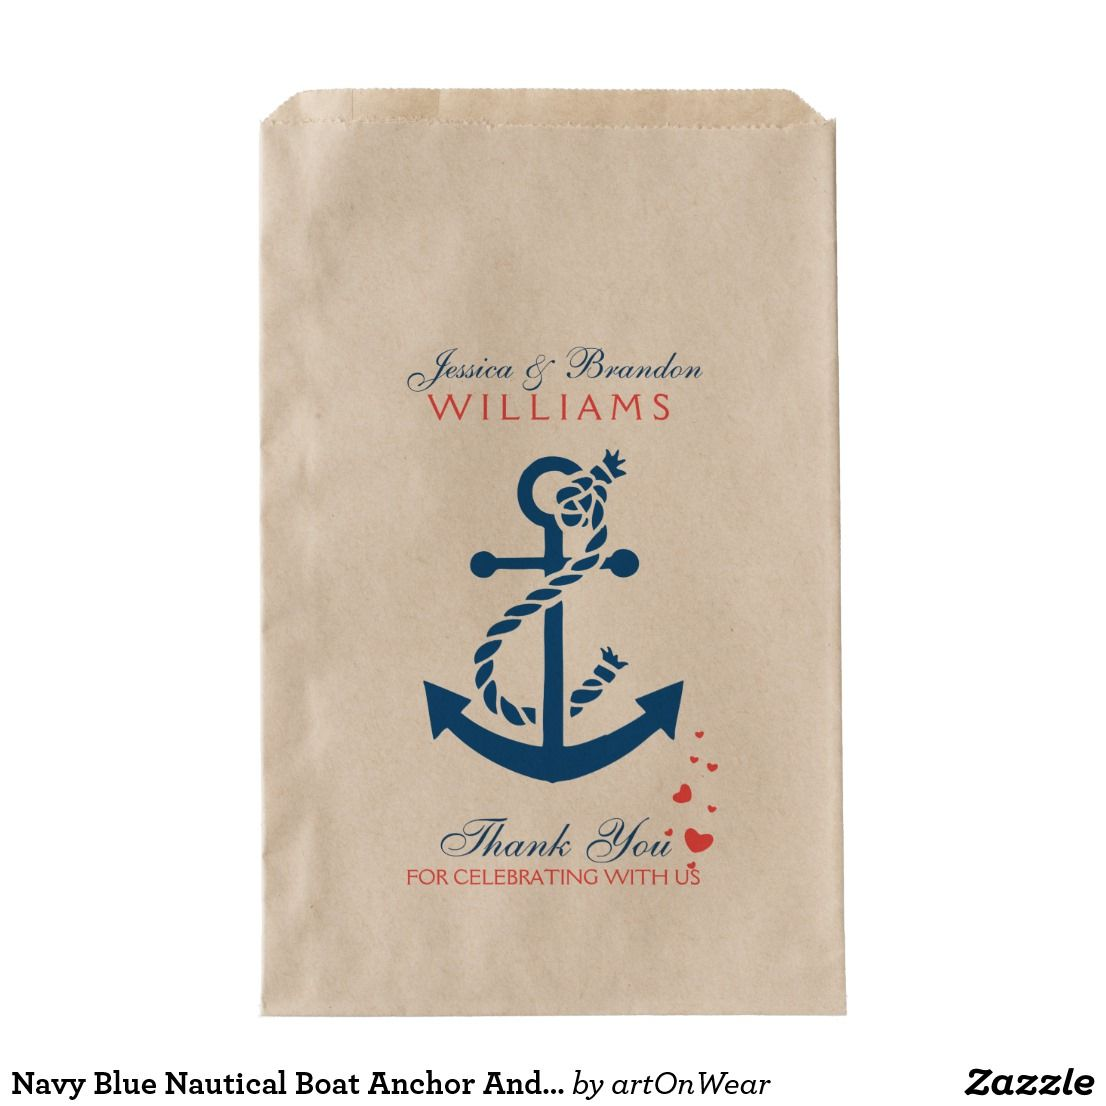 Navy Blue Nautical Boat Anchor And Rope Favor Bag | Favor bags ...